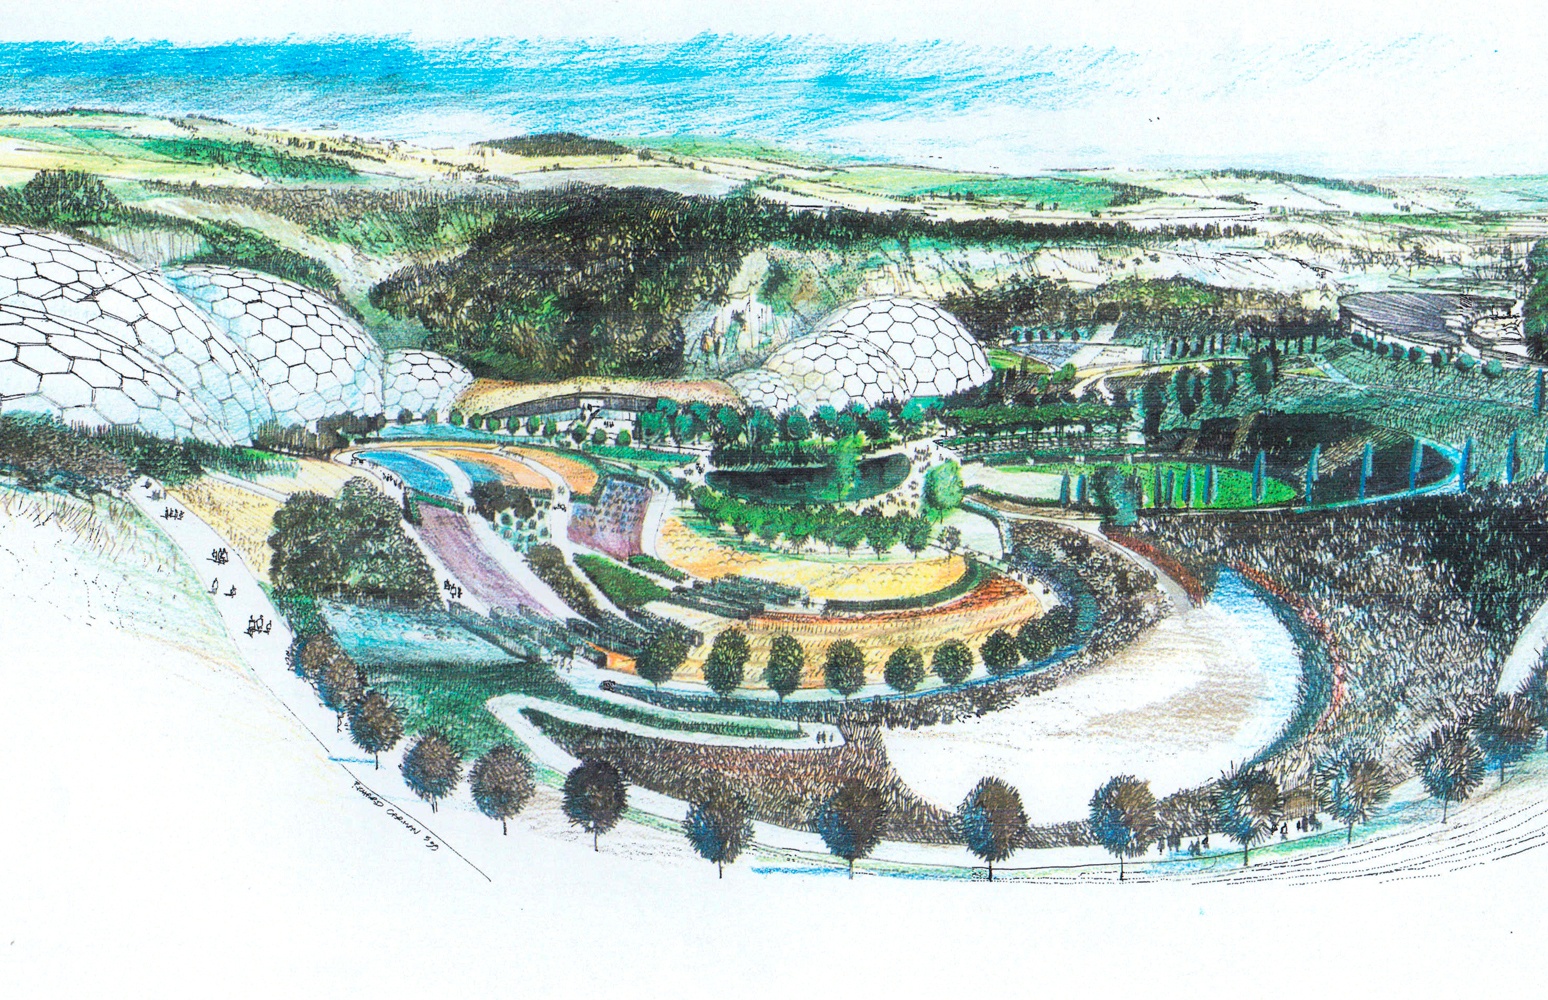 Drawing of the Eden Project